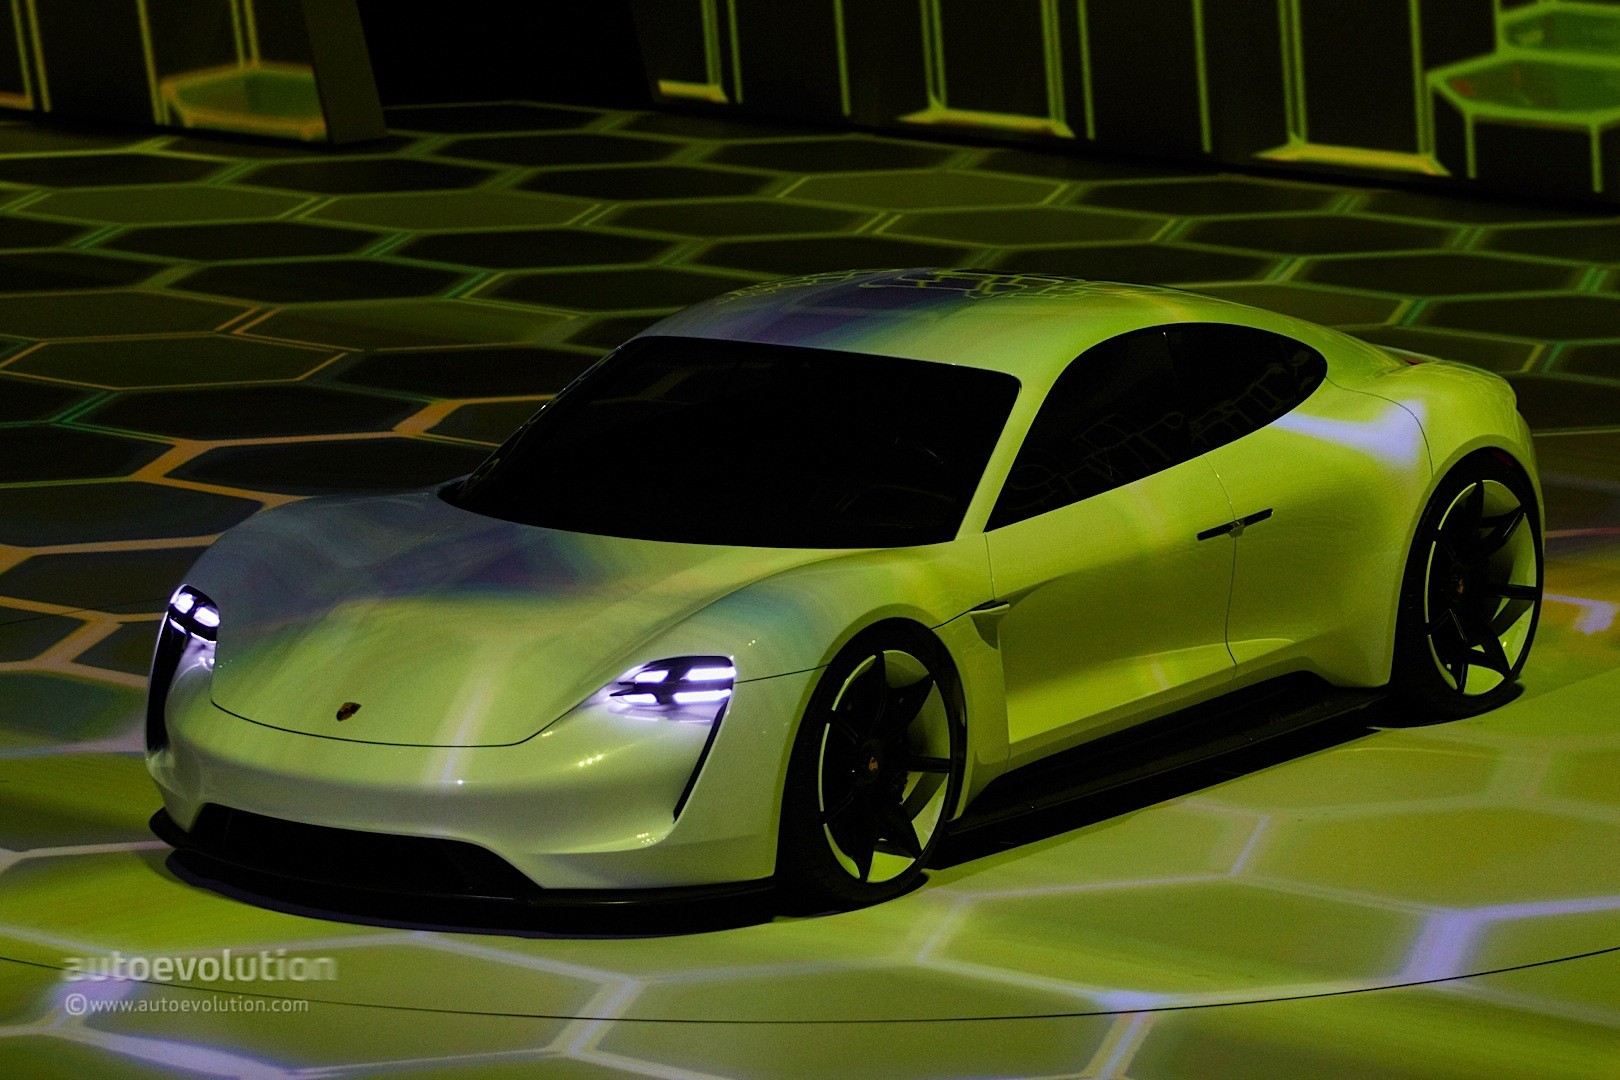 porsche mission concept electric production mop any horses revealed tesla wants floor its autoevolution coming gets frankfurt mashup fascia makes